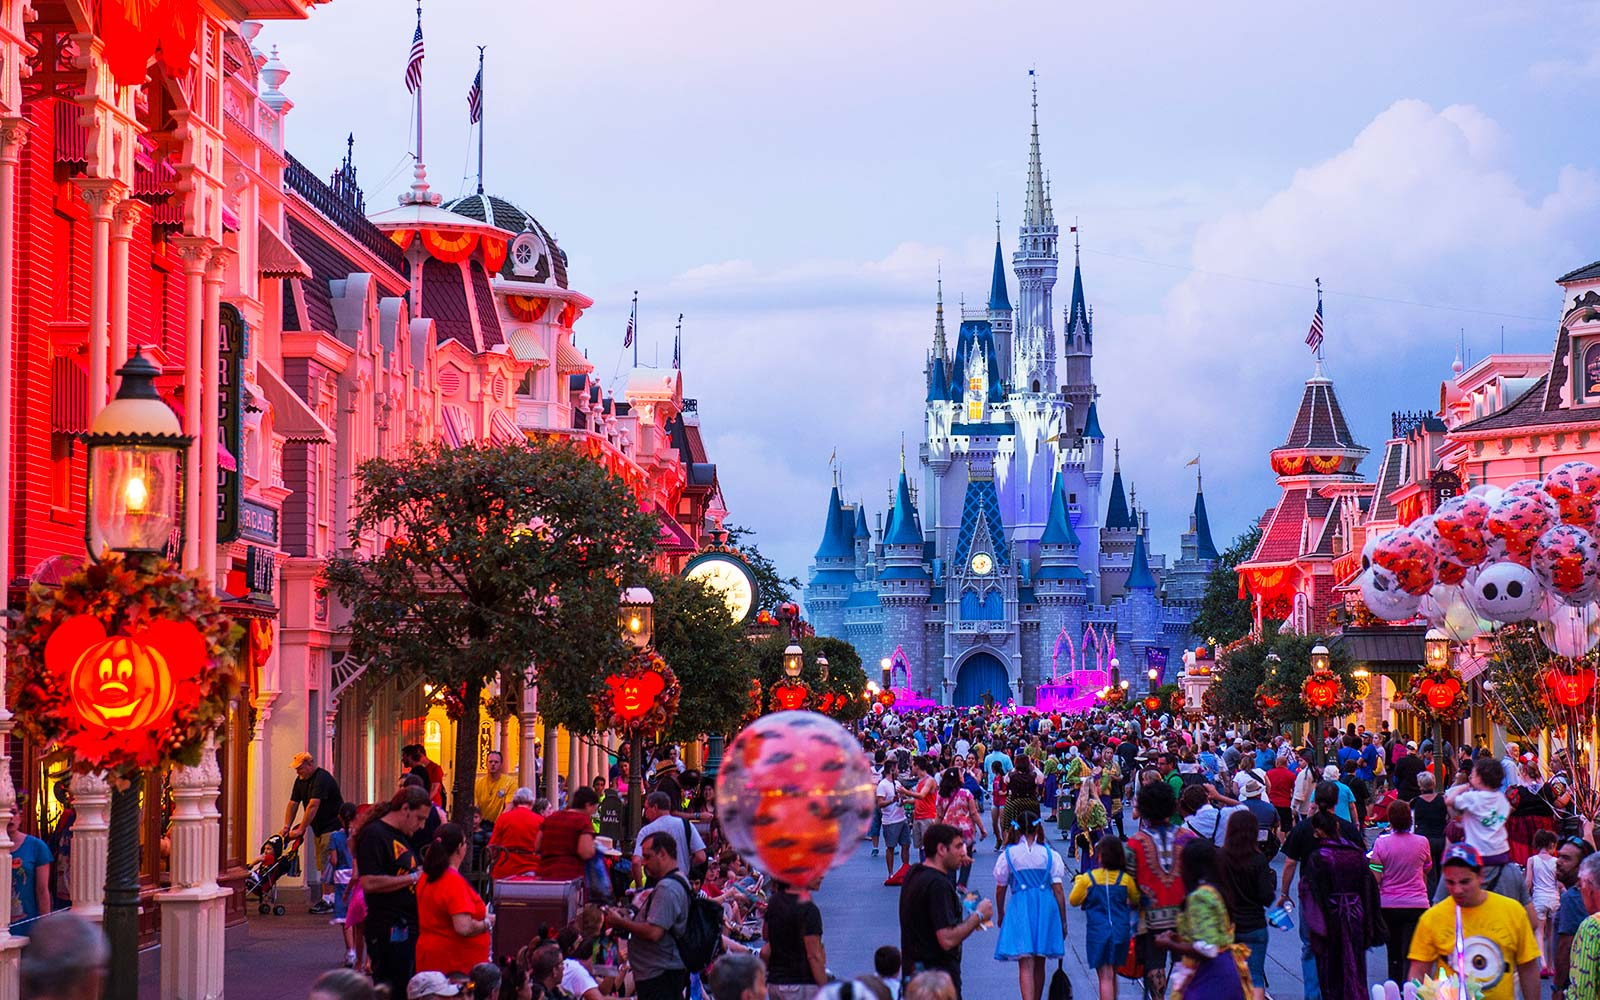 Mickey's Not-So-Scary Halloween Party Transforms Magic Kingdom After Dark